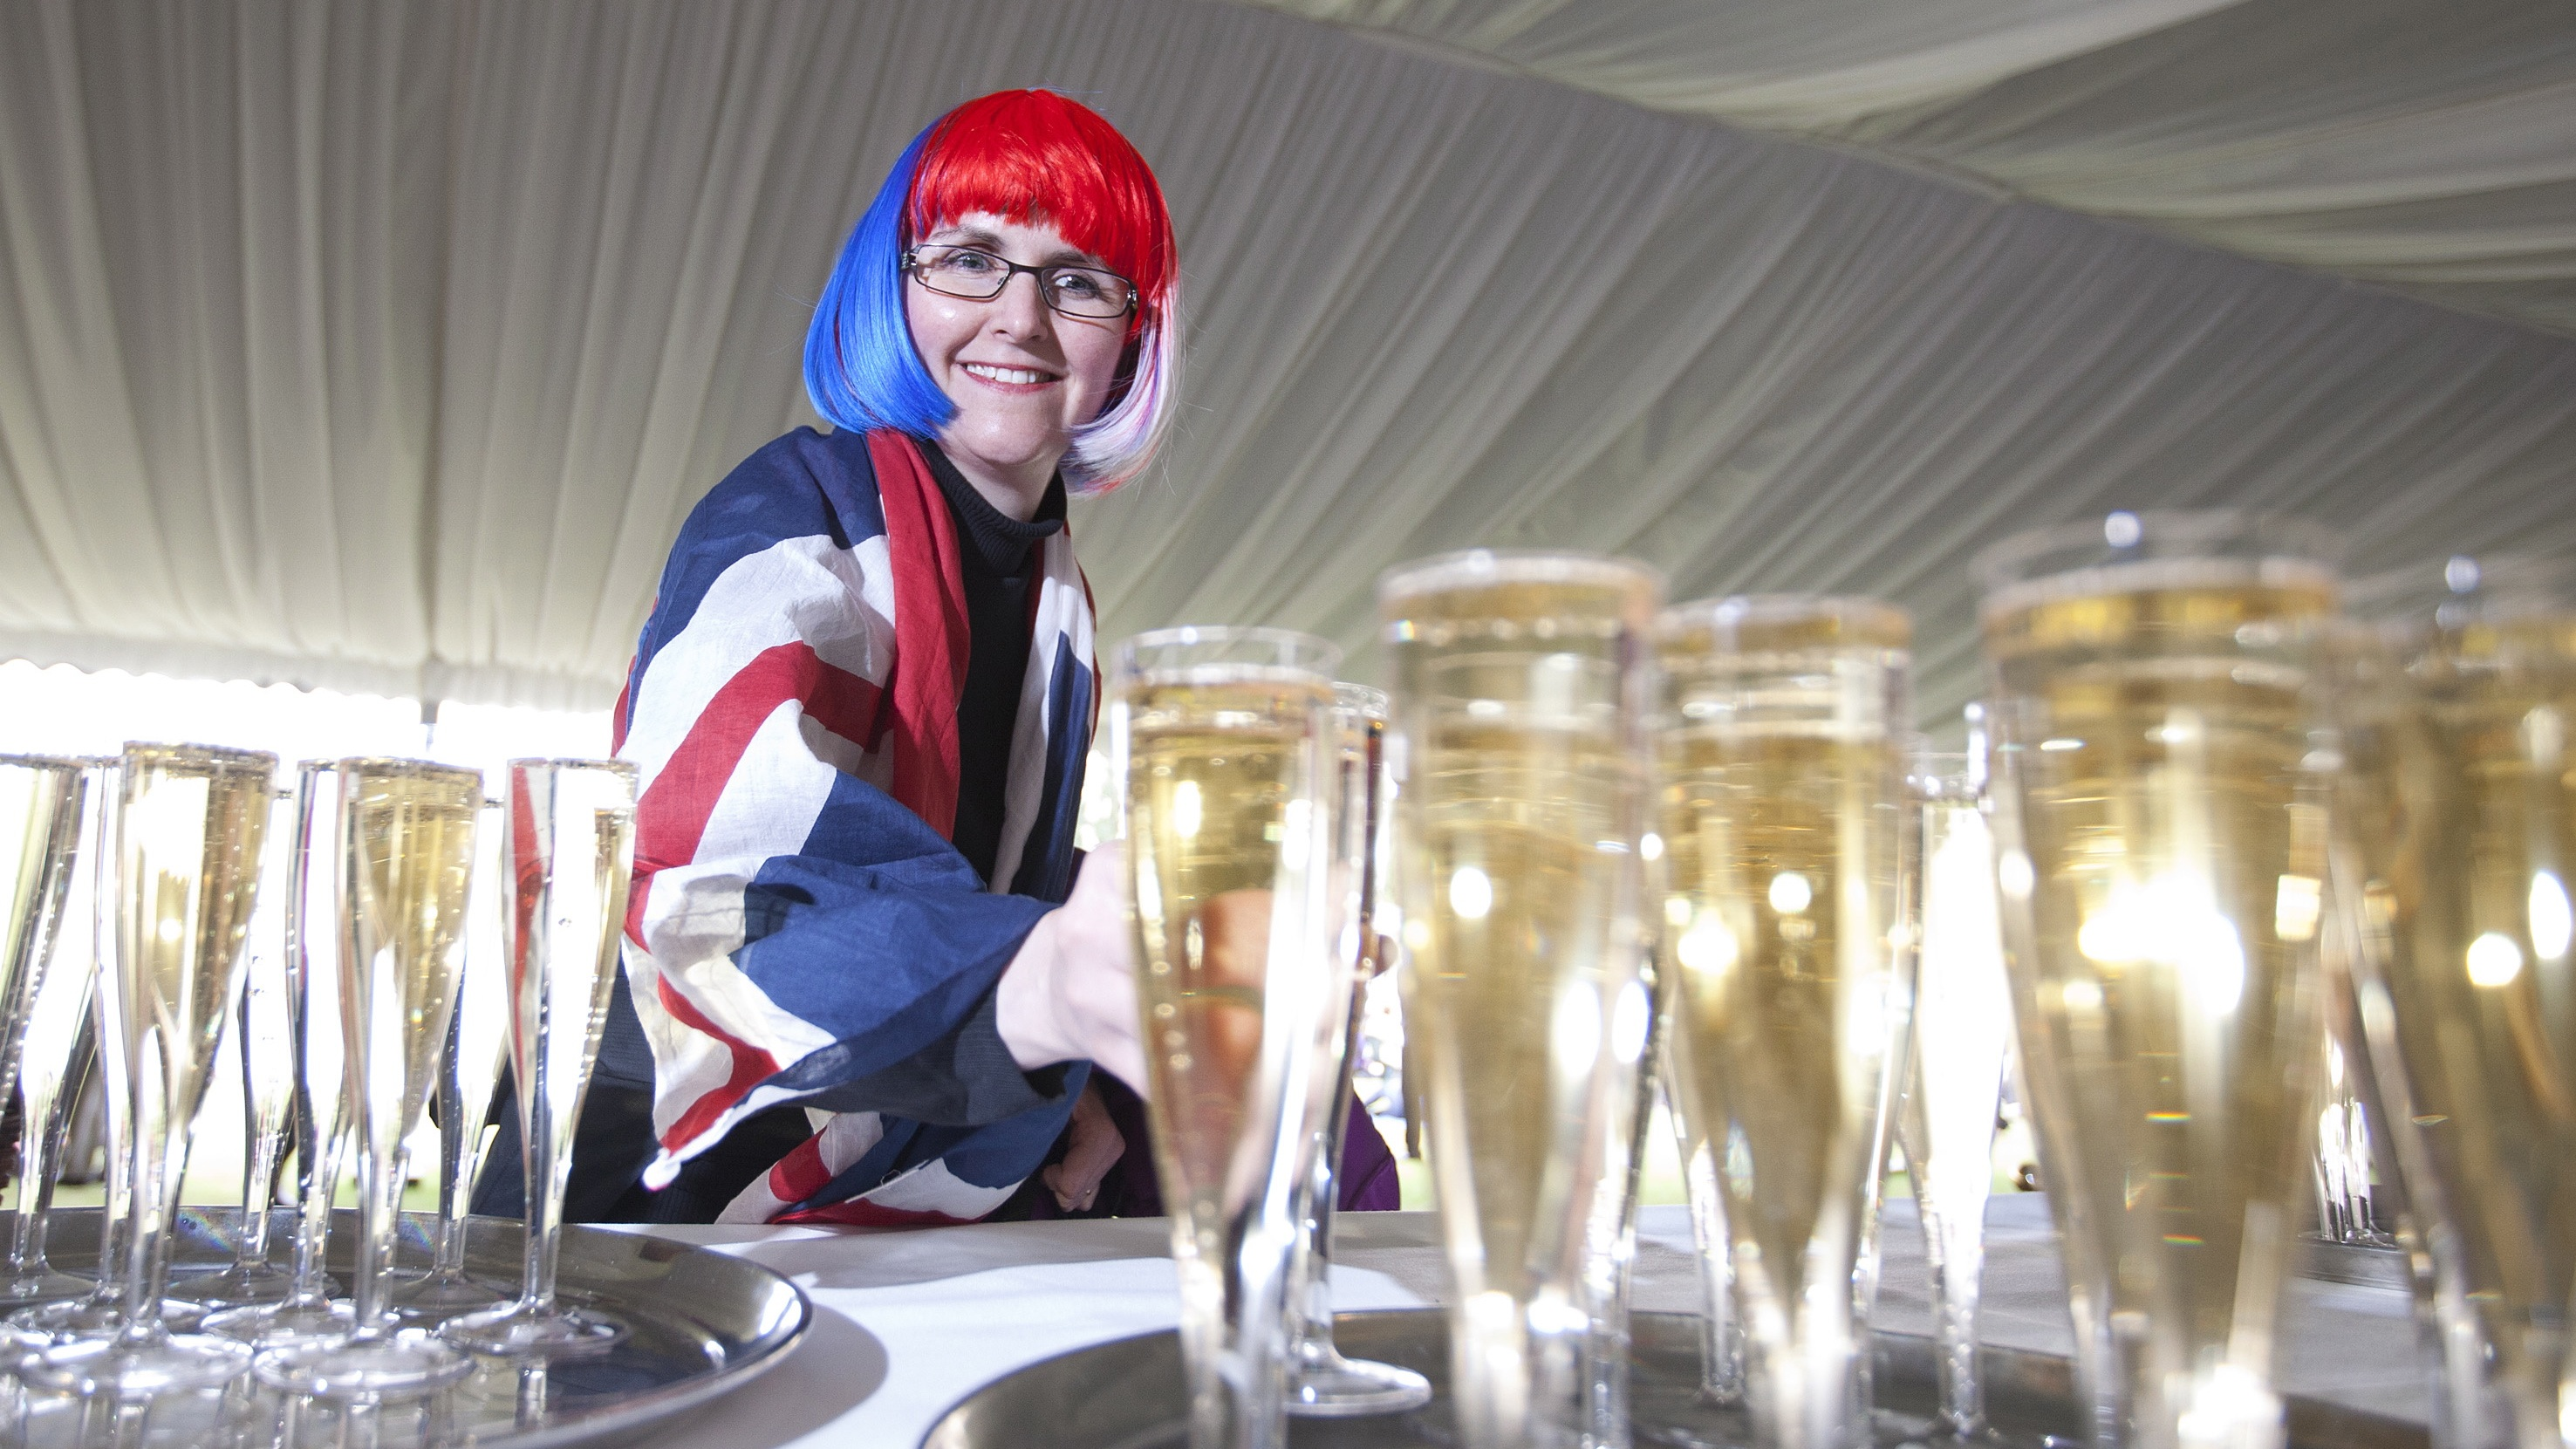 A Queen's Jubilee enthusiast. Events like the Jubilee and the Royal Wedding have increased interest in English bubbly.